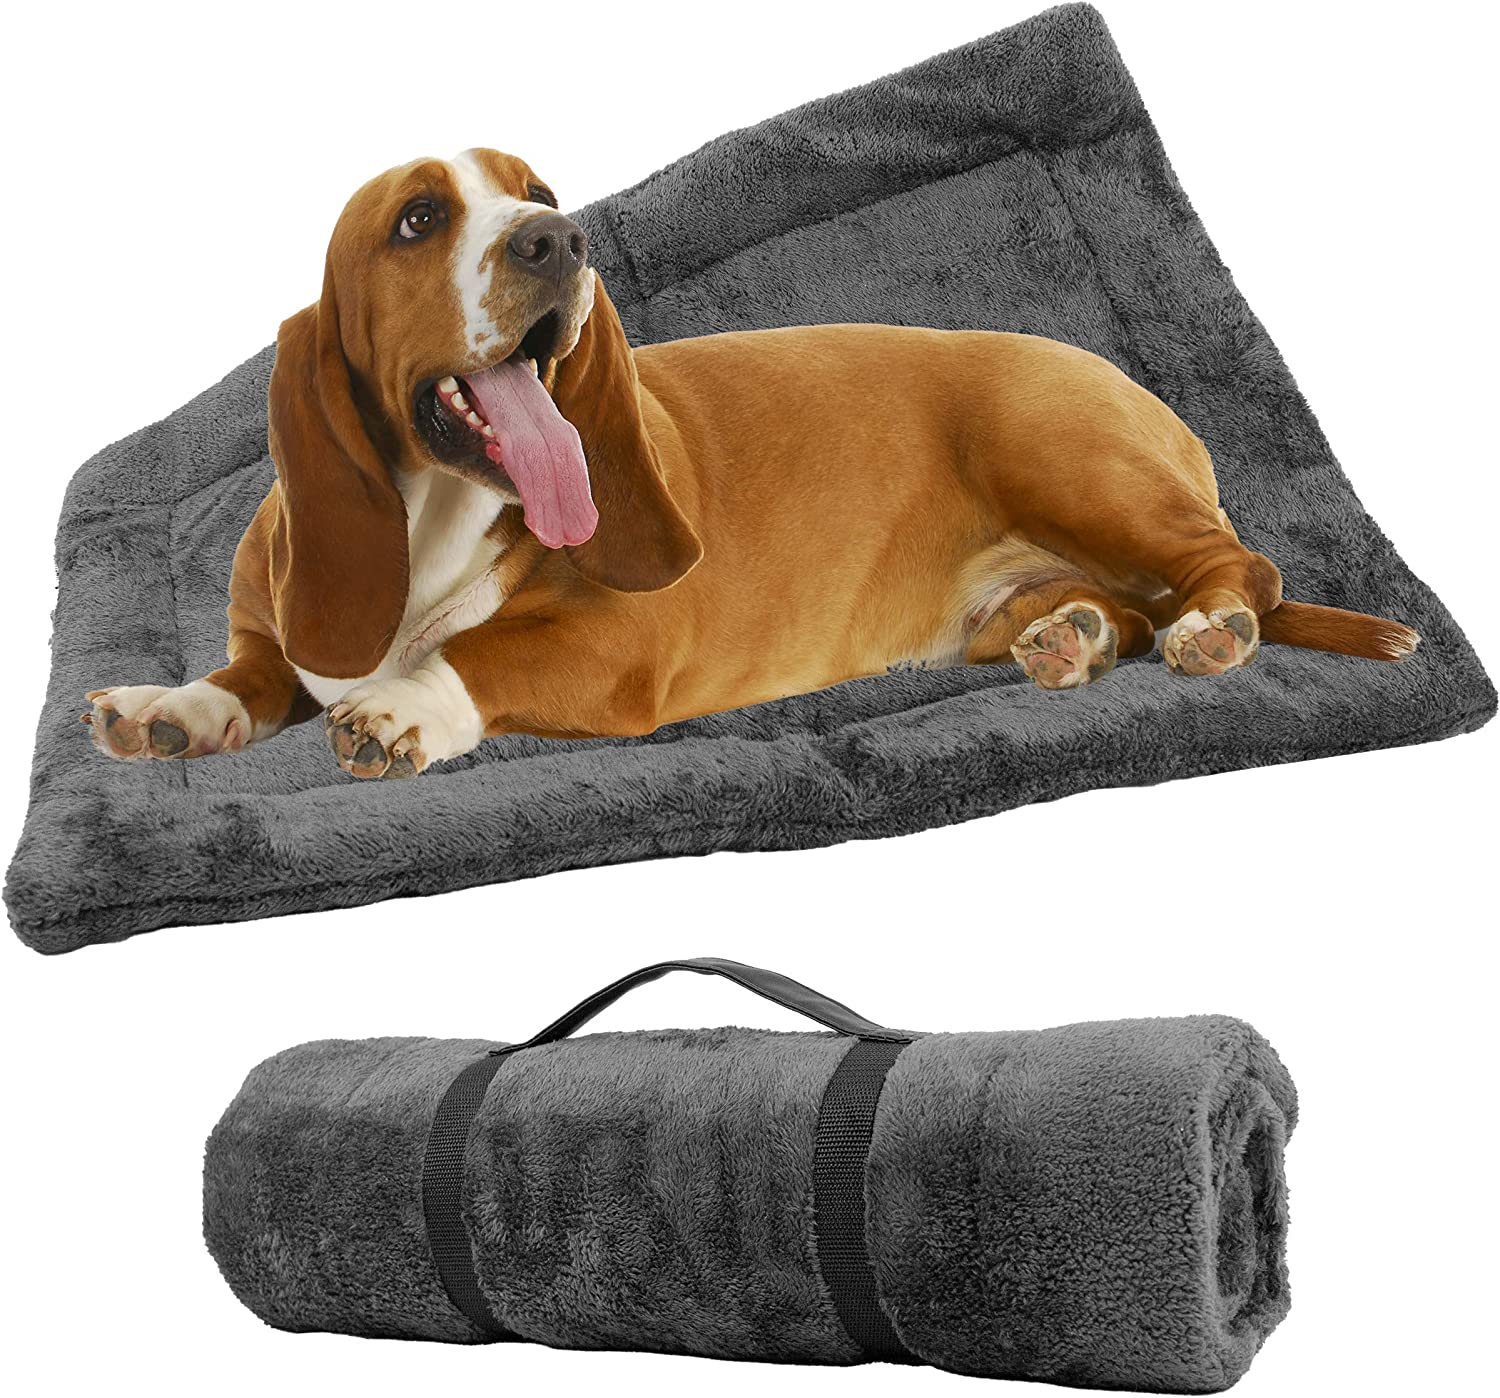 Downtown Pet Supply Self-Heating Thermal Crate Mats with Handle, Warming Kennel Pads for Dogs, Cats, and Pets Available in Grey and Brown with Small, Medium, and Large Sizes